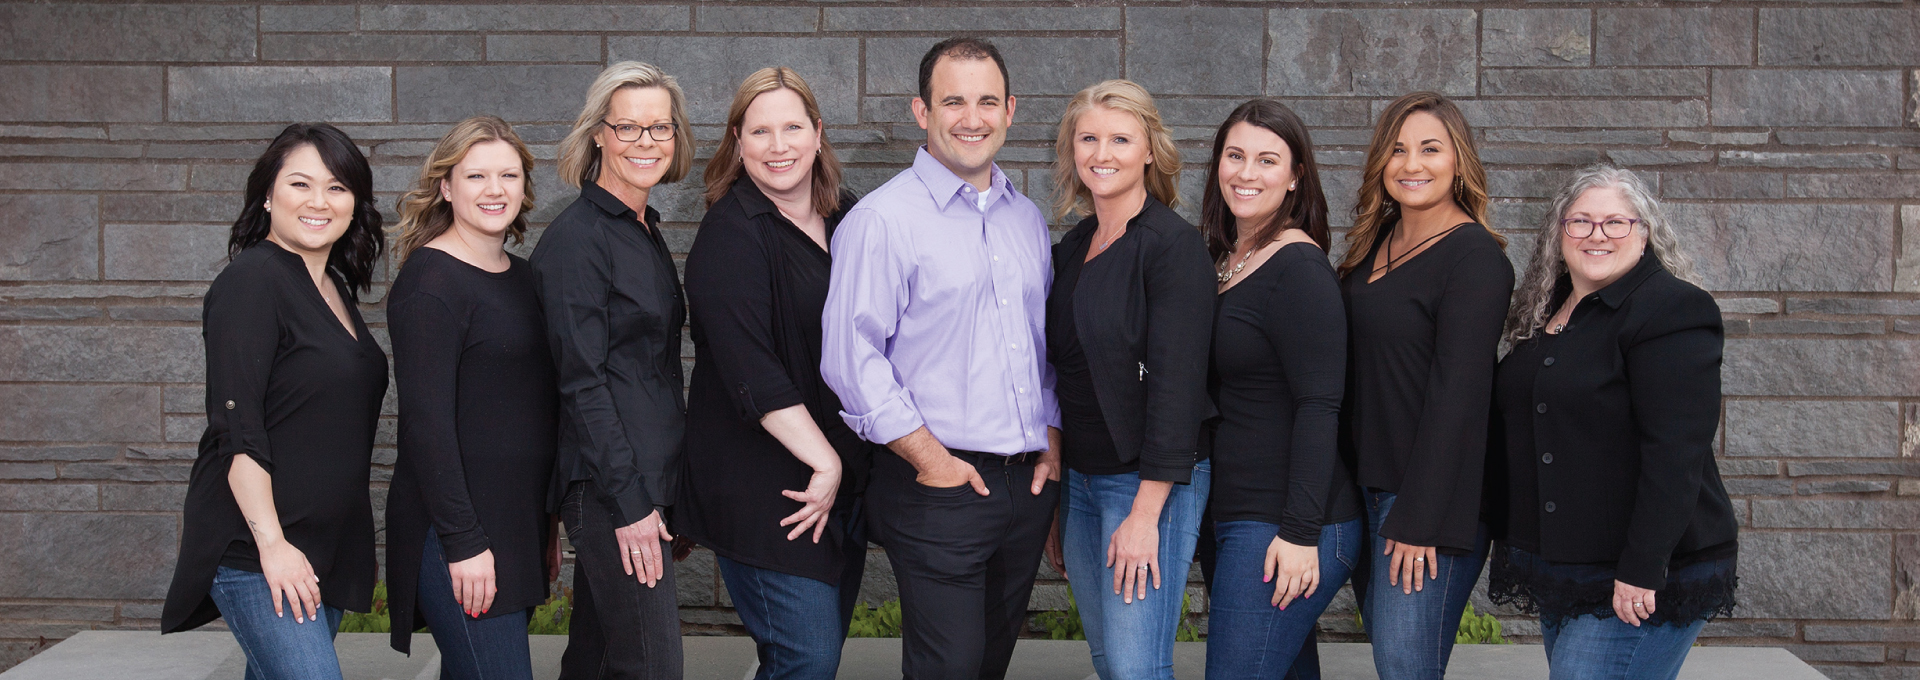 Bothell Orthodontics - Our Team